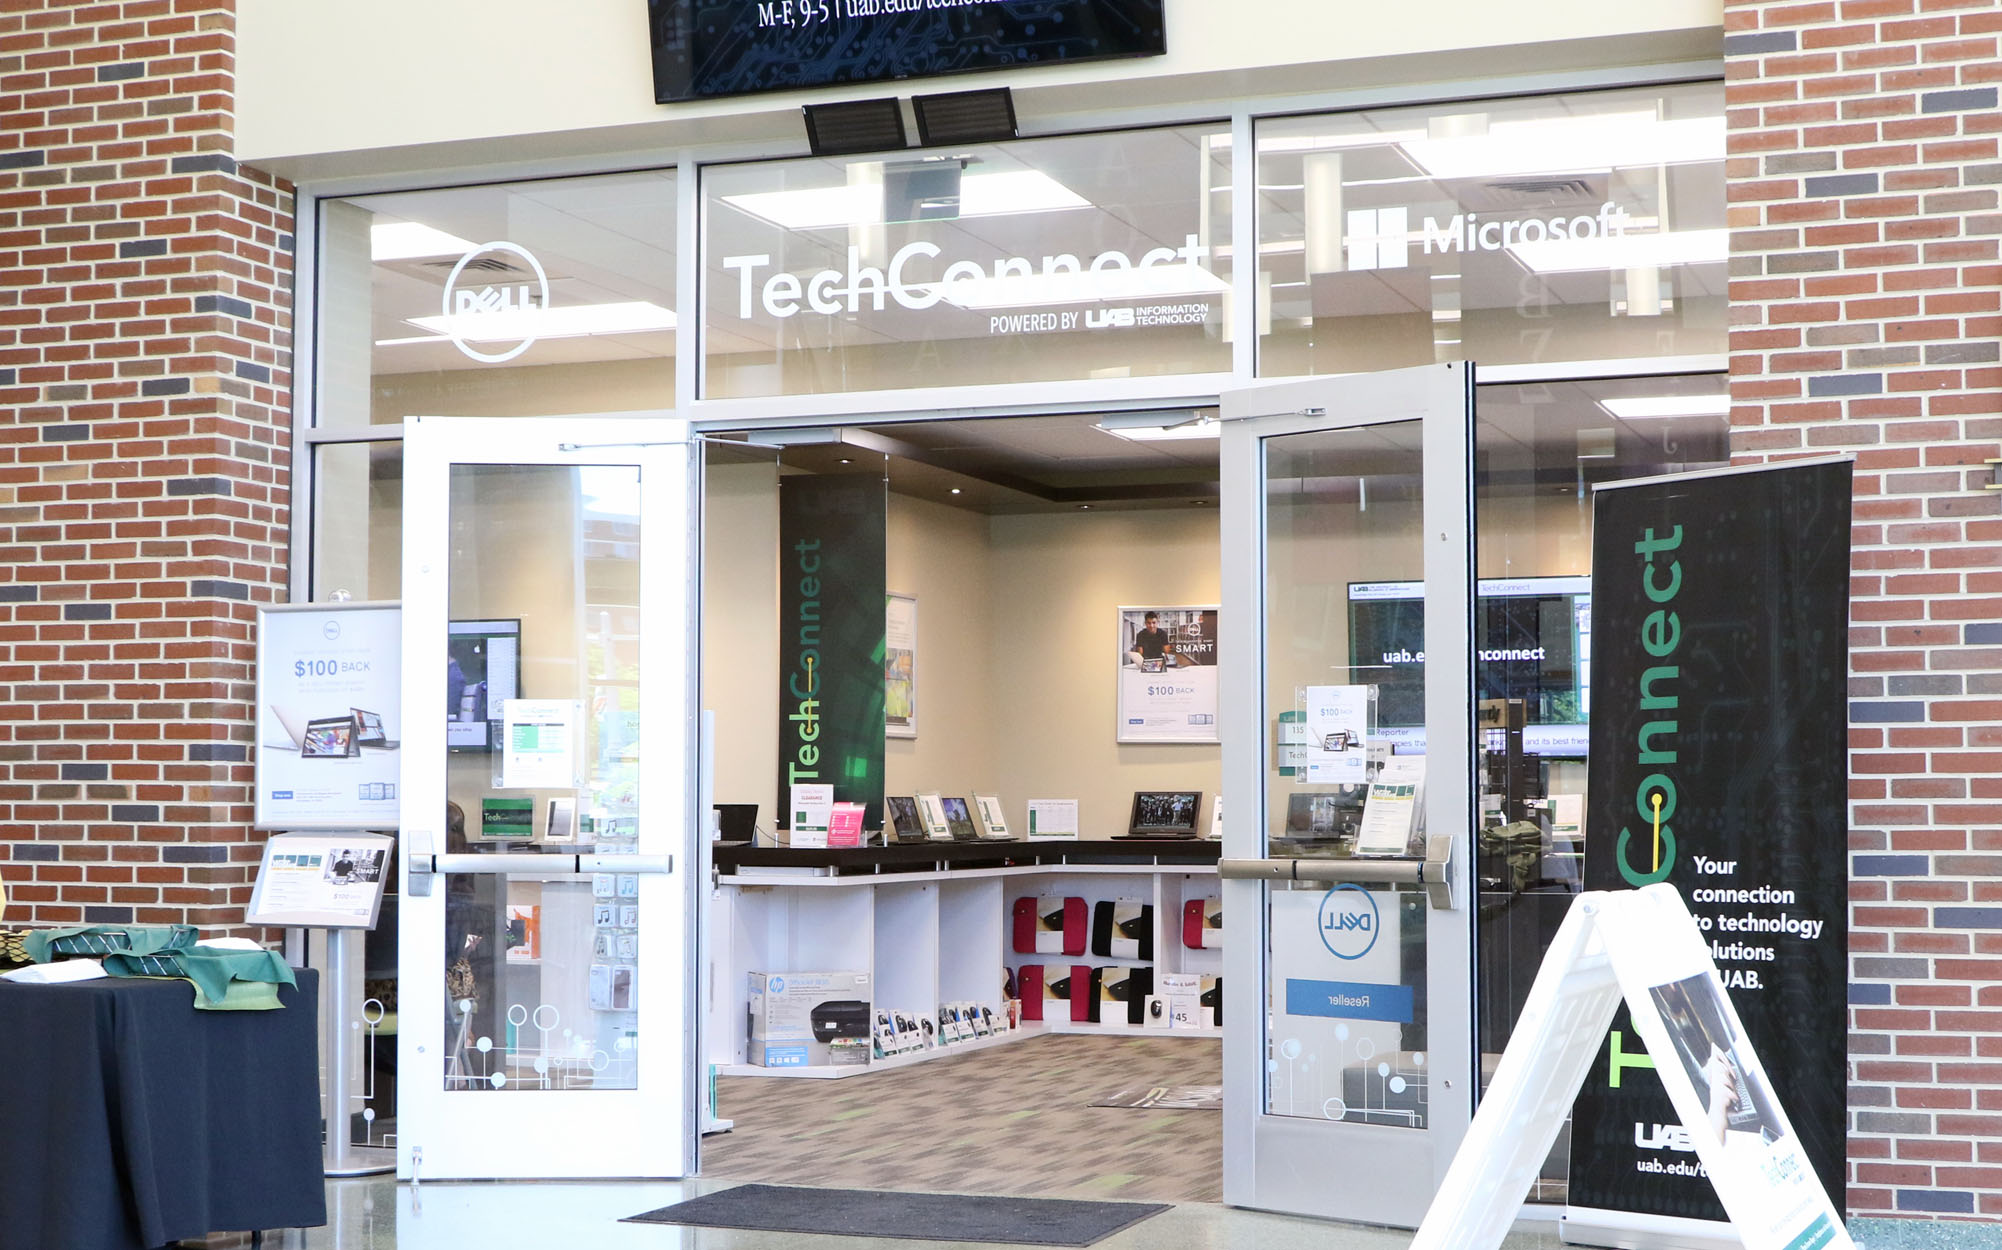 TechConnect storefront